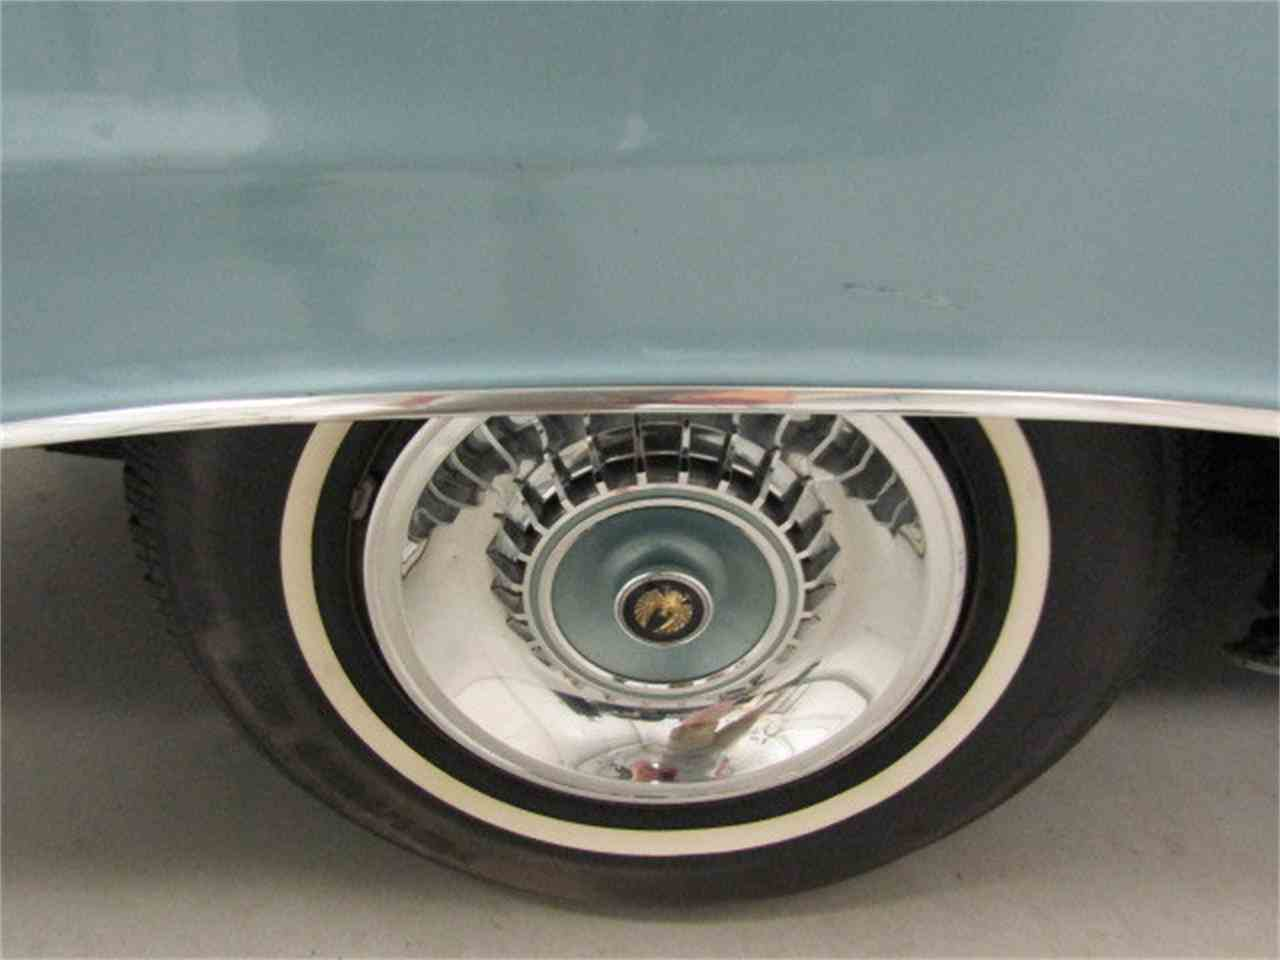 Large Picture of 1964 Chrysler Imperial located in Virginia - $21,970.00 - JLDR